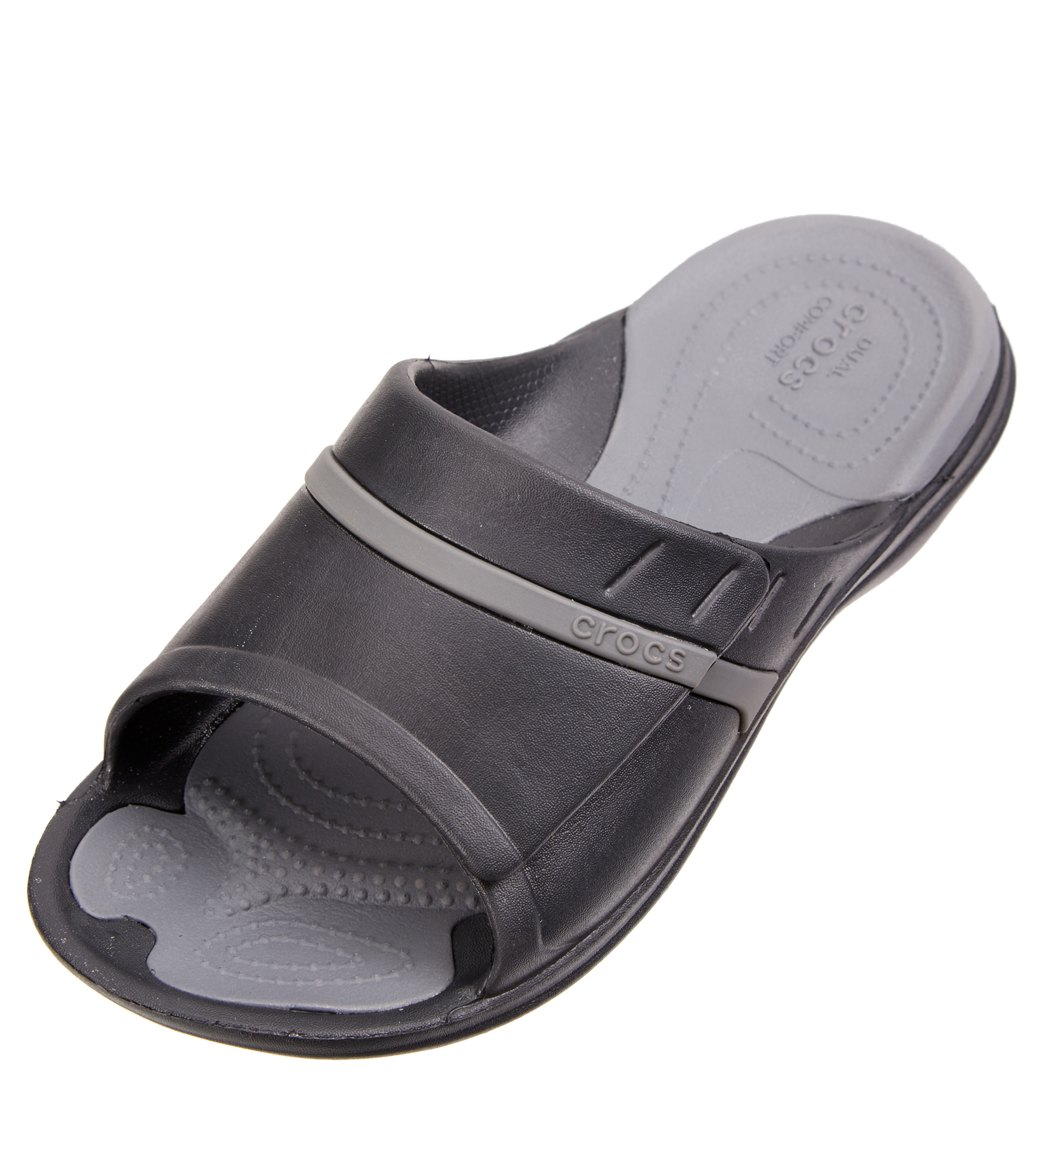 be23e569a27c Crocs MODI Sport Slide at SwimOutlet.com